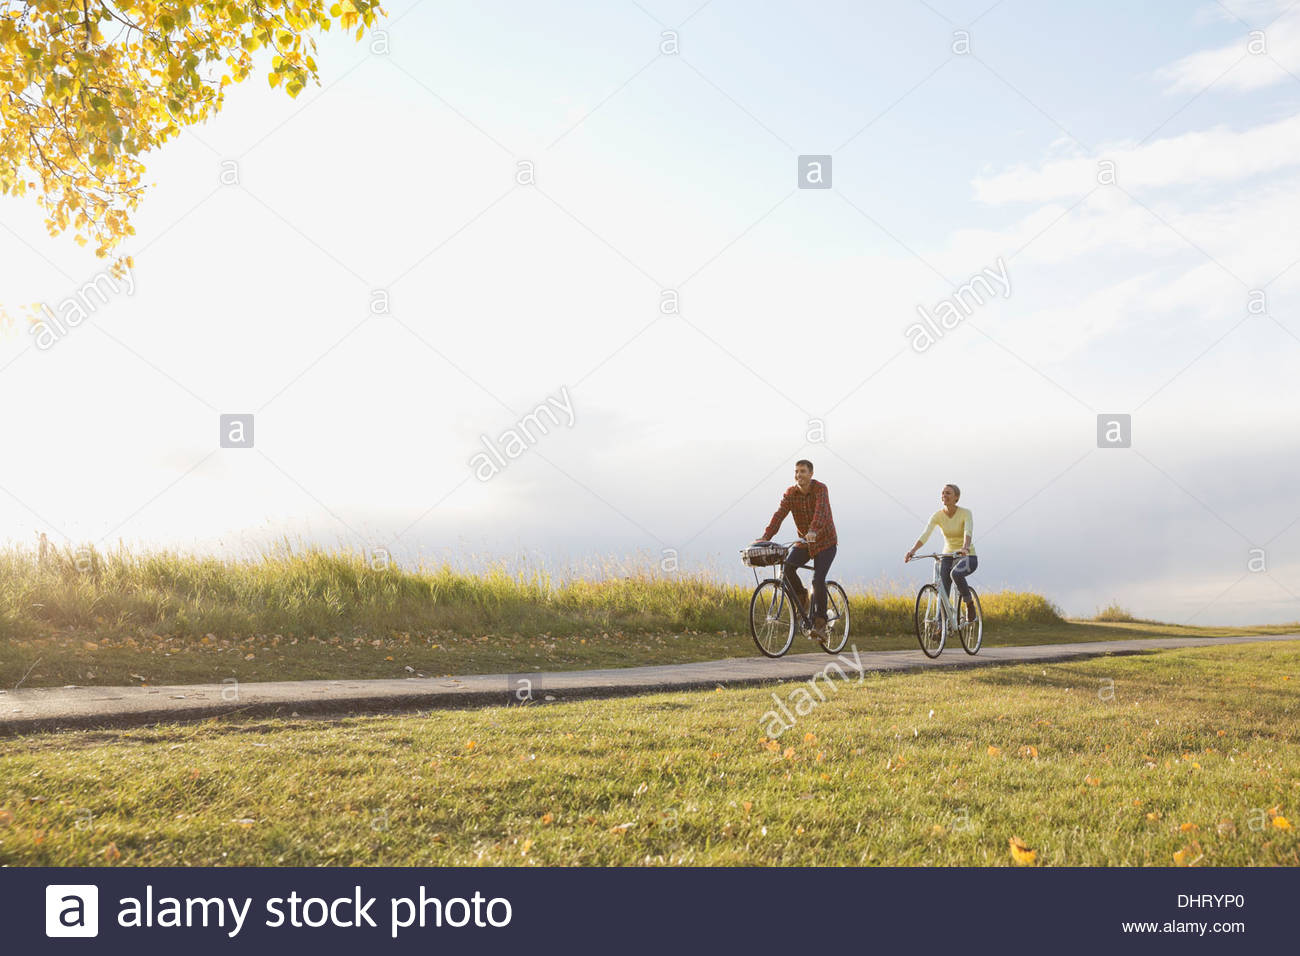 Full length of couple cycling on country road - Stock Image